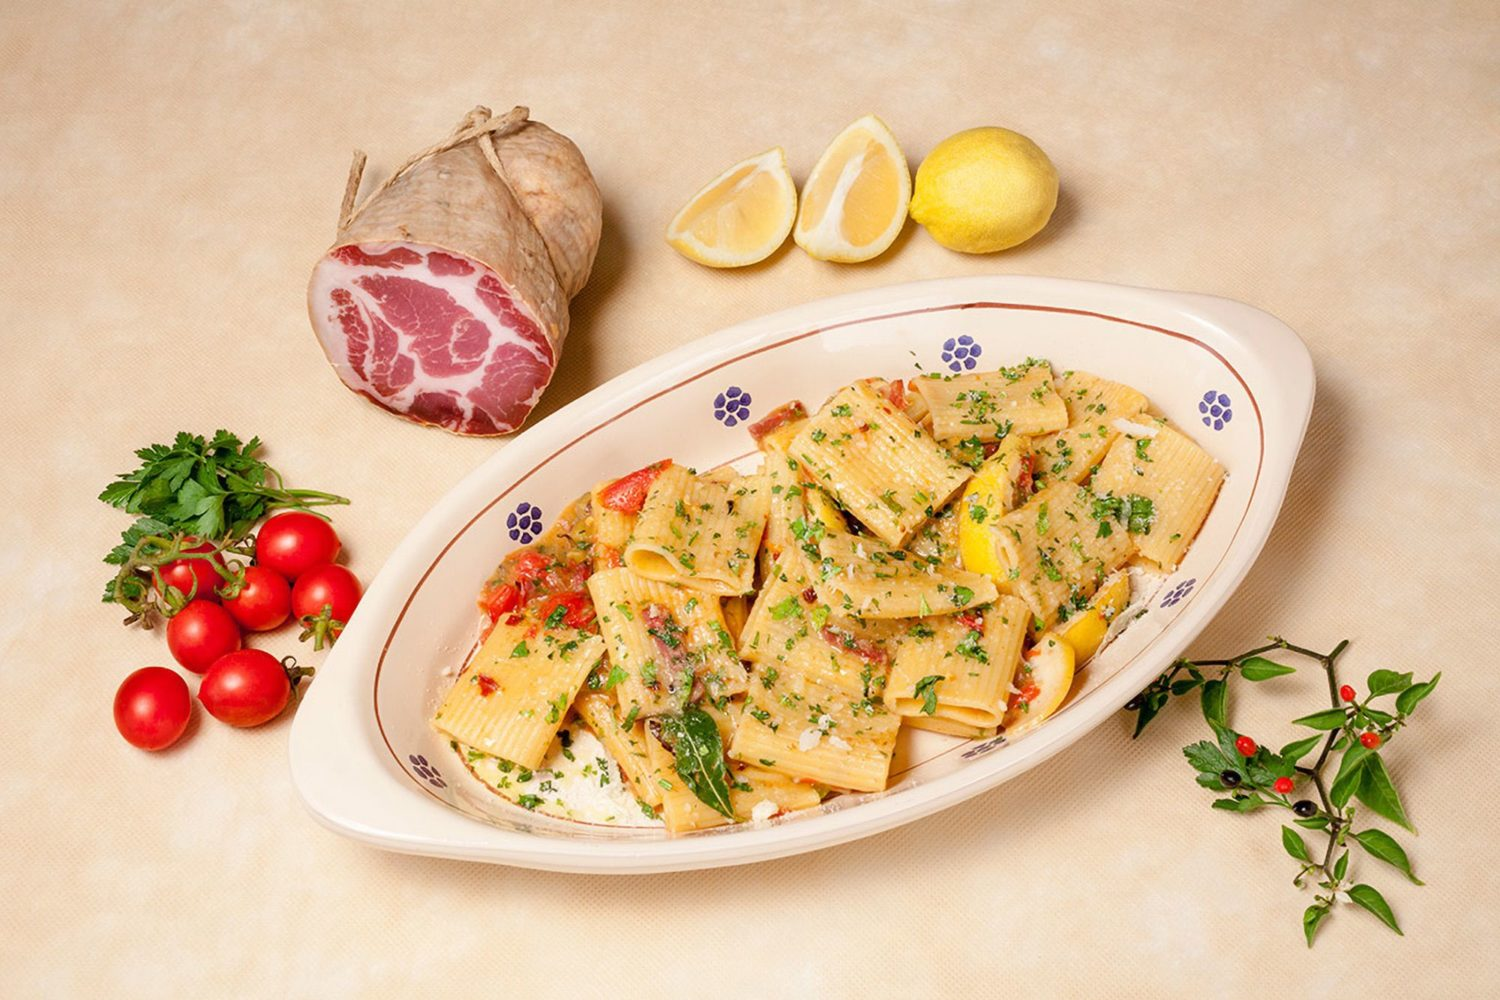 Apulian traditional dish